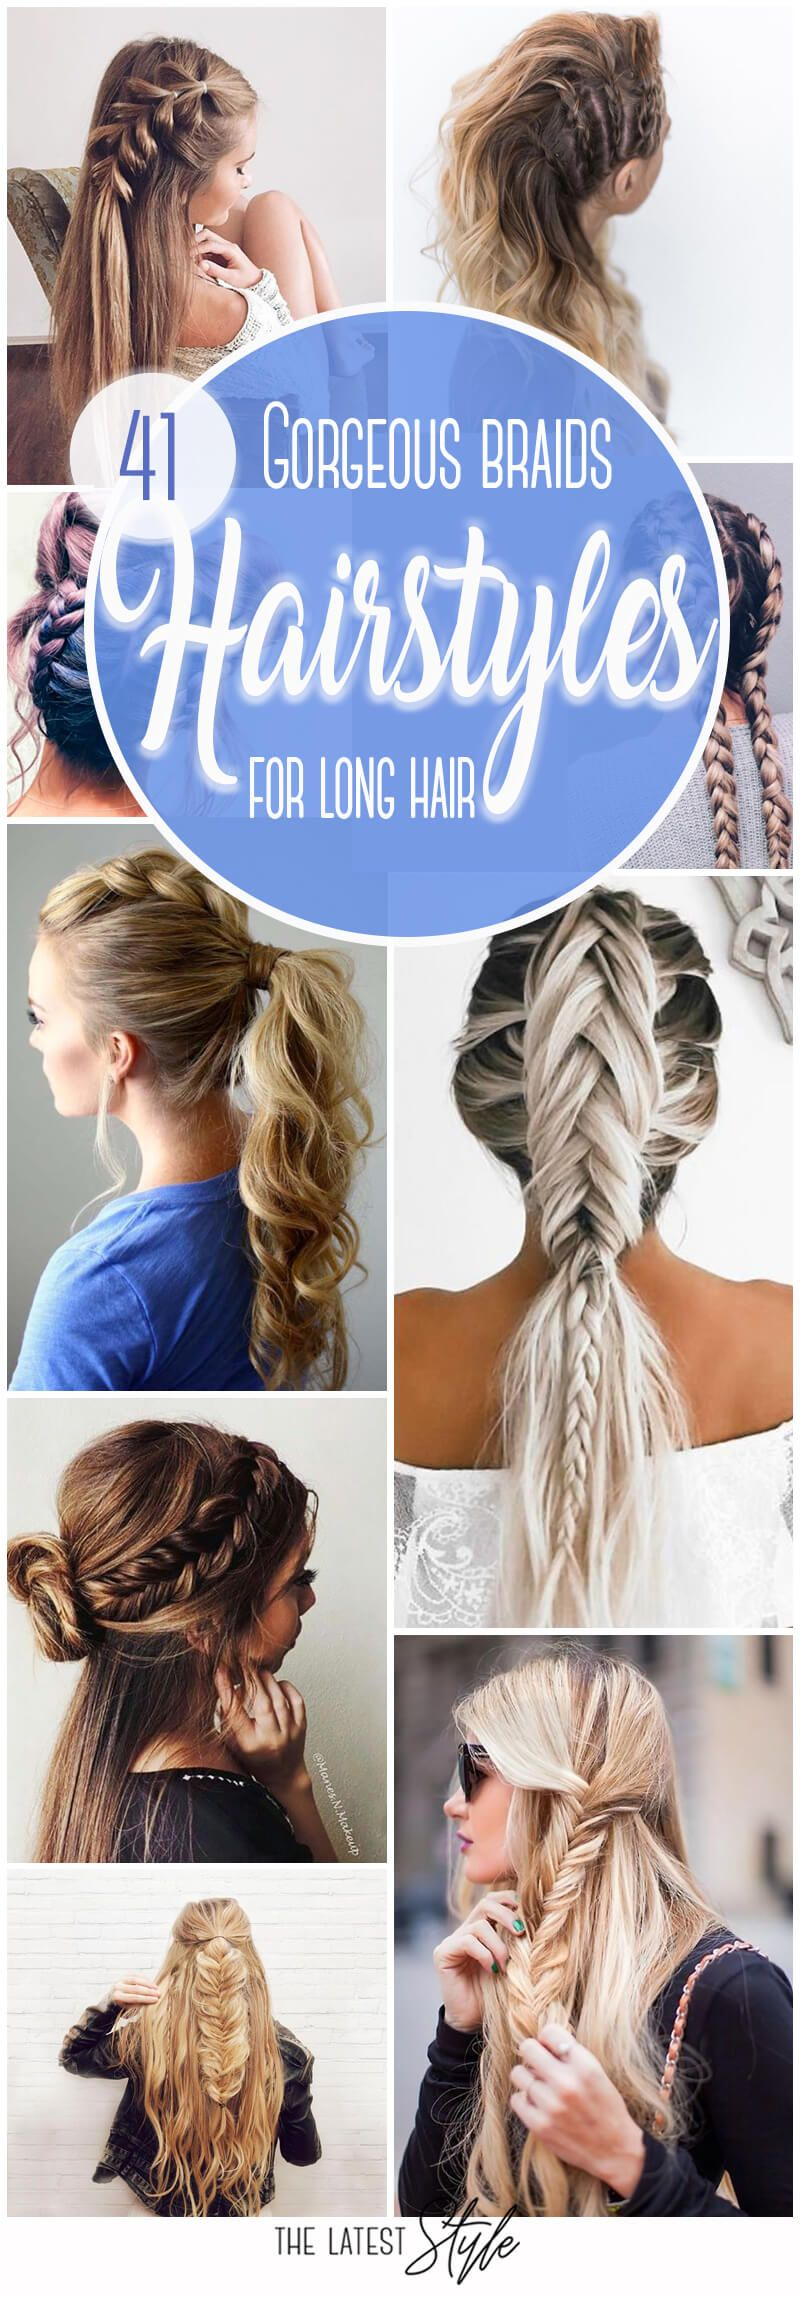 You may use any of the beautiful styles listed when you want to look